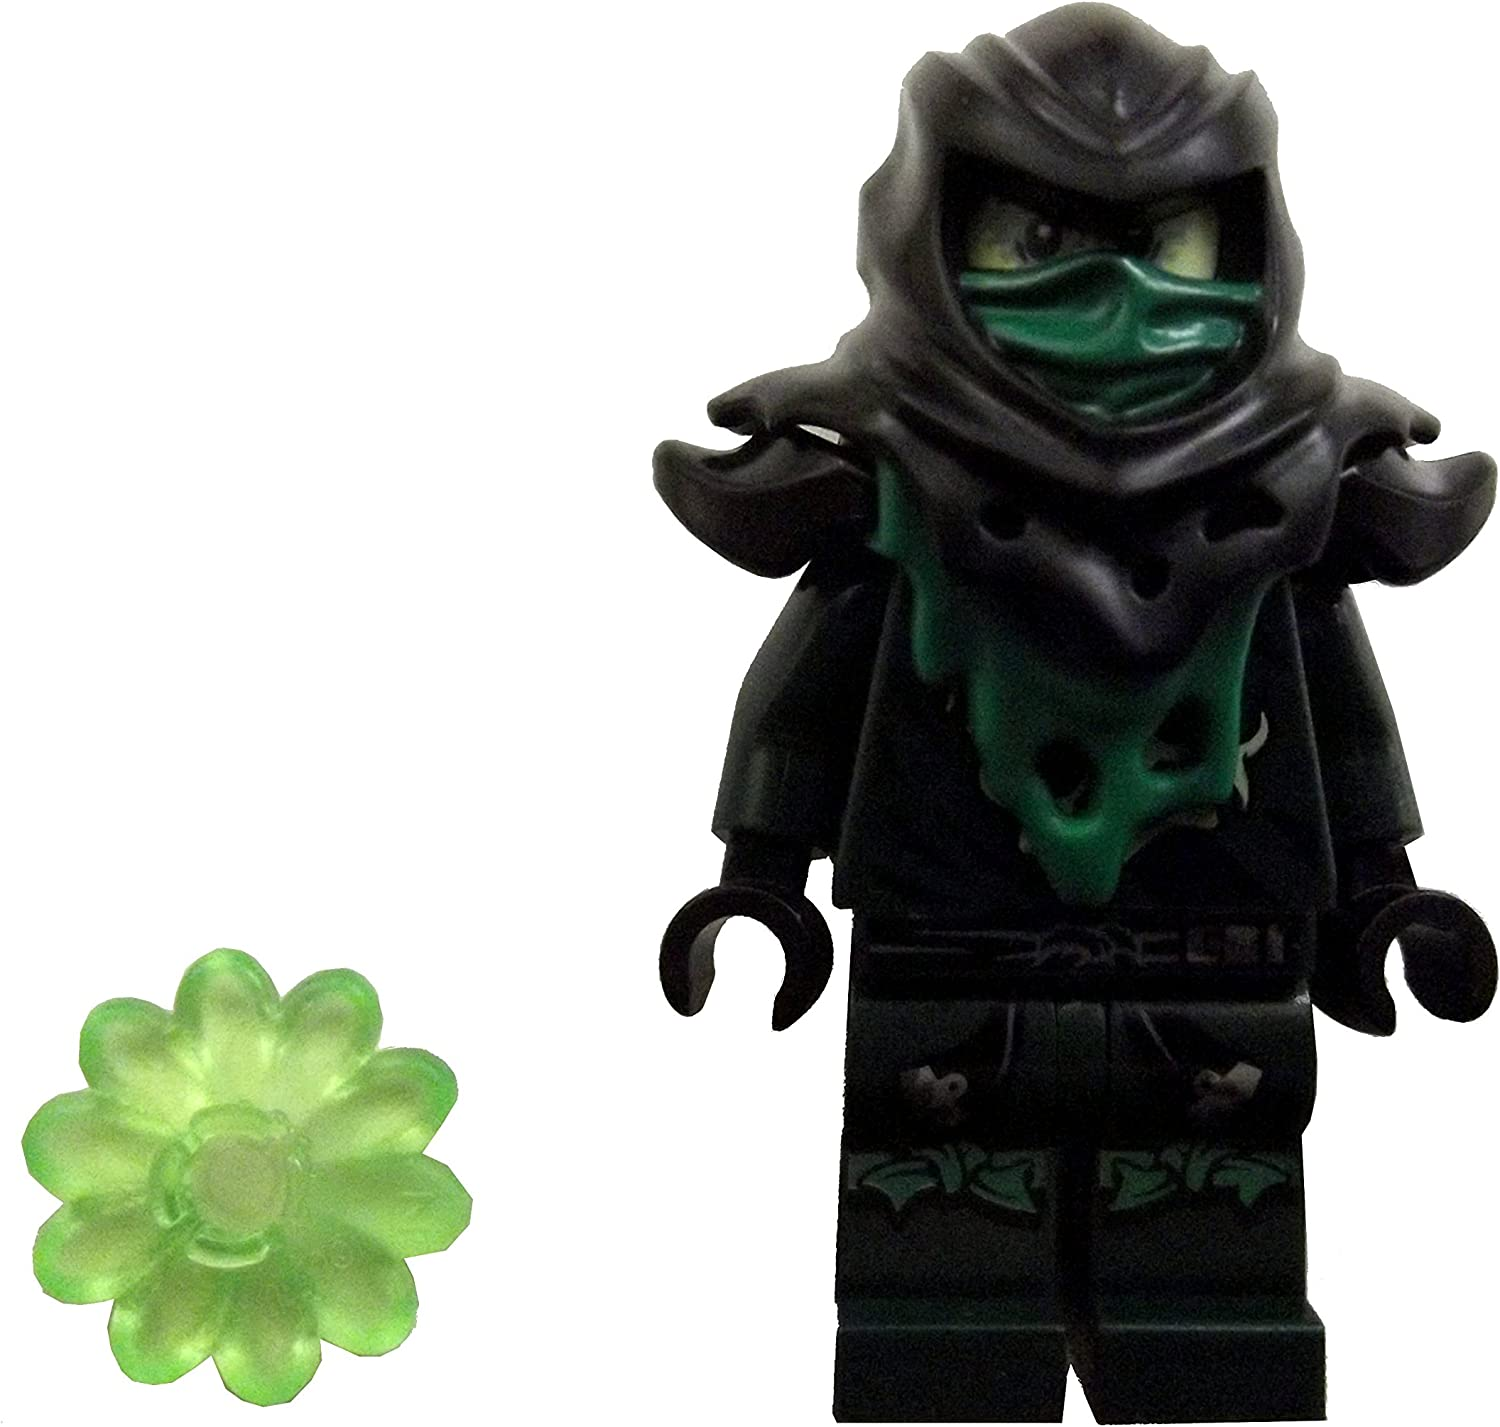 LEGO Ninjago: Possessed Evil Lloyd Green Ghost Ninja Minifigure